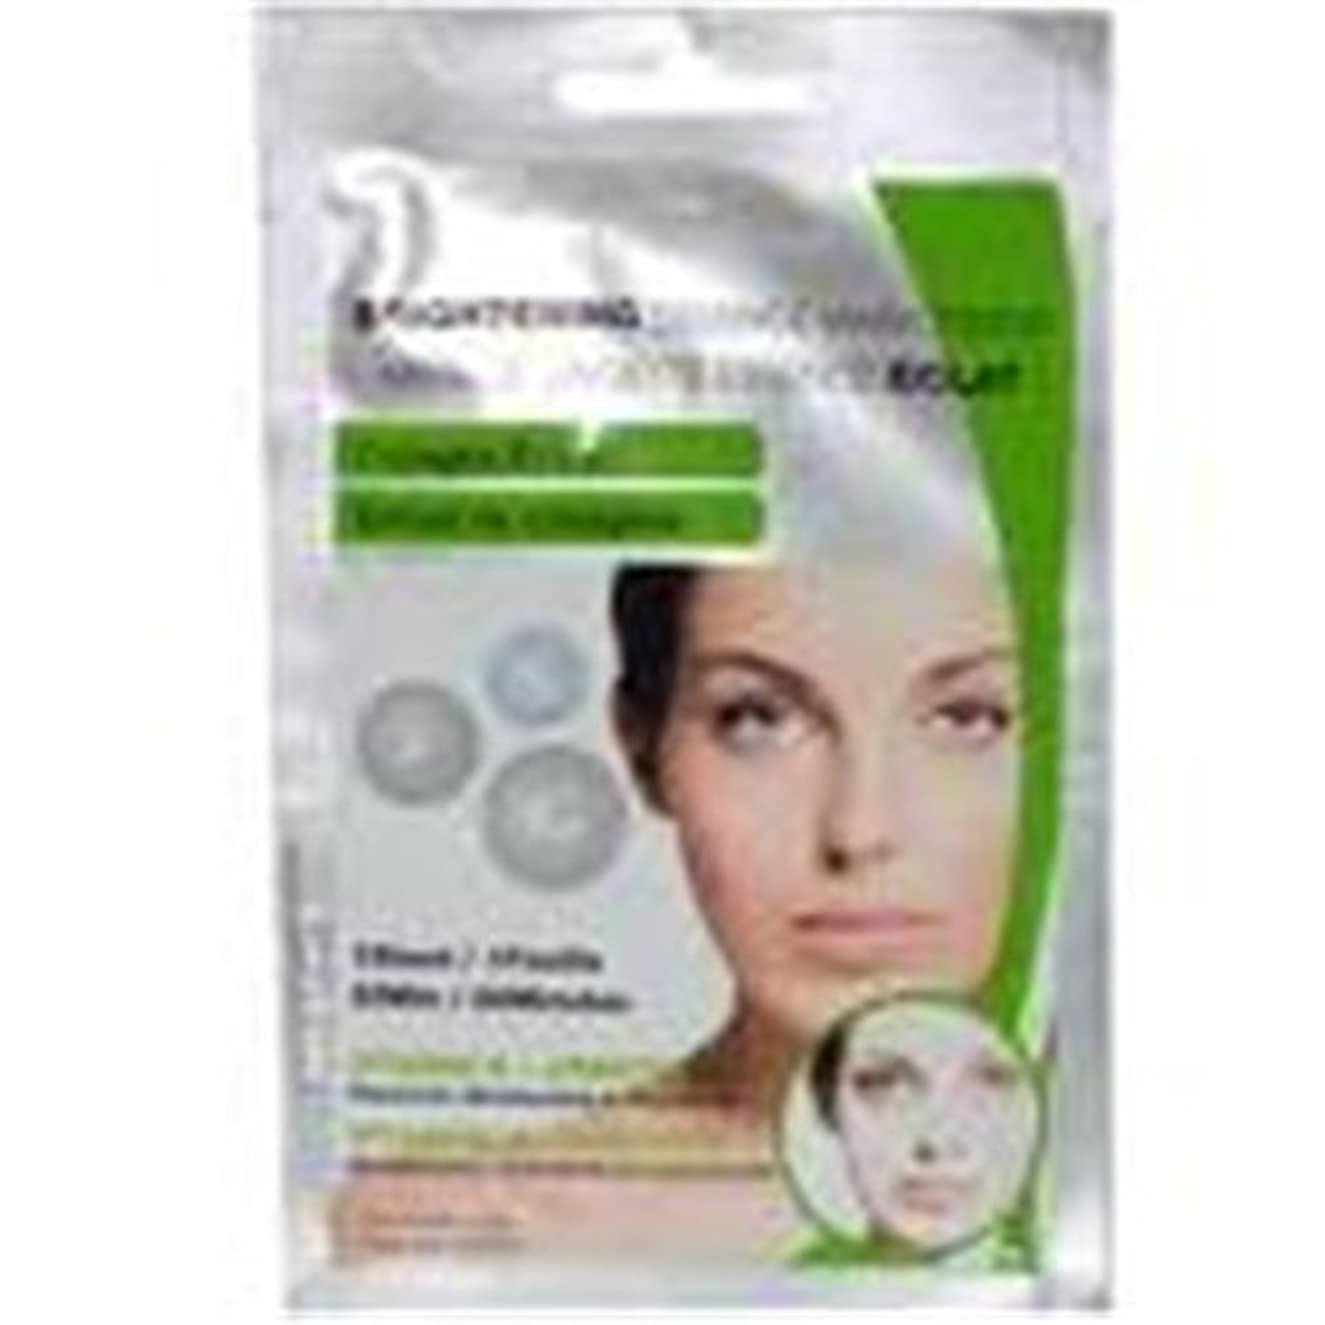 先祖びっくりフロンティア海外直送品Nicka K Cosmetics Brightening Essence Face Mask, Collagen Extract 1 ct